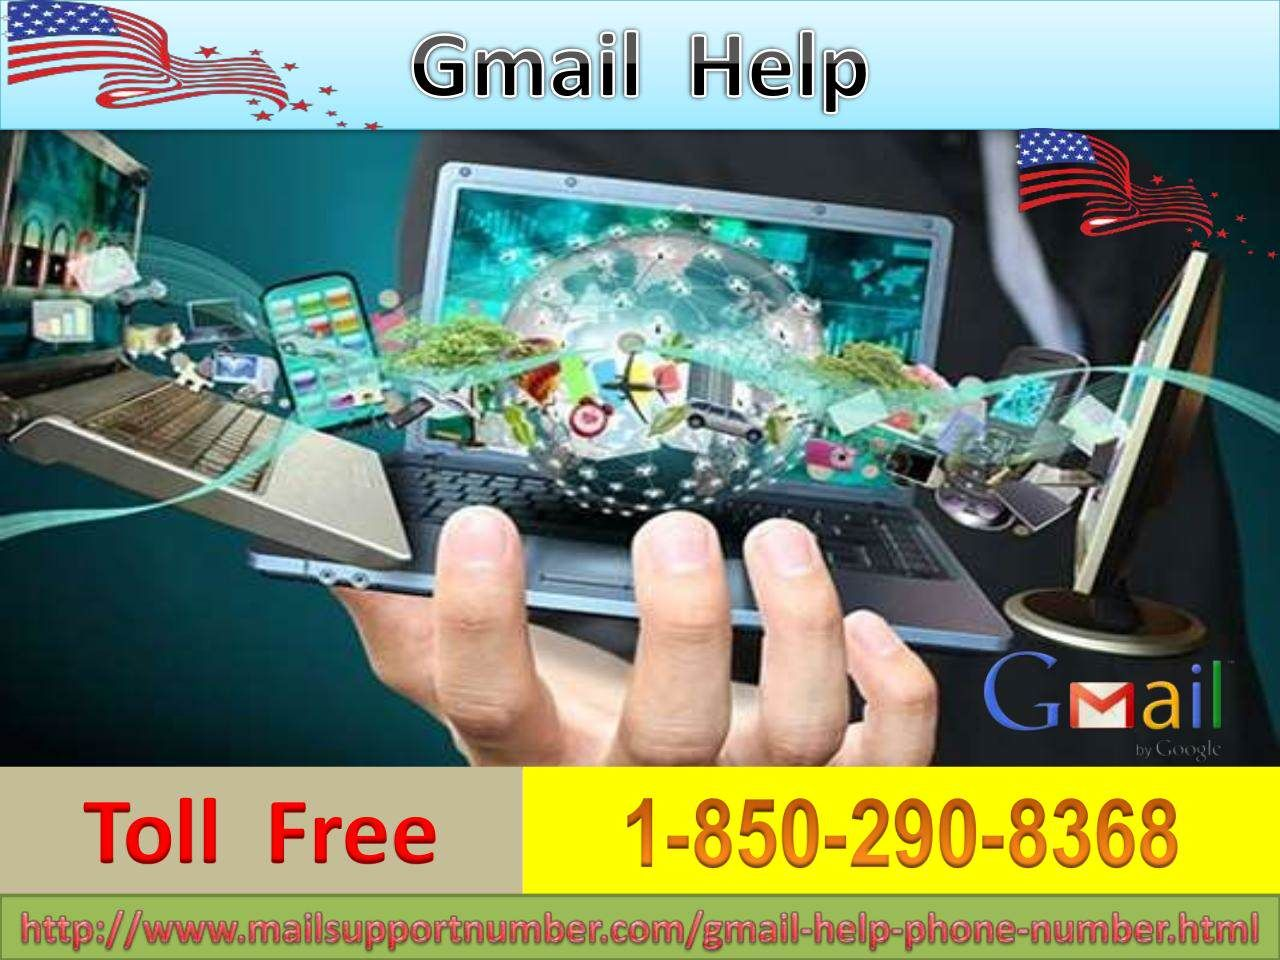 Is Gmail Help +18502908368Call On really the speedy way